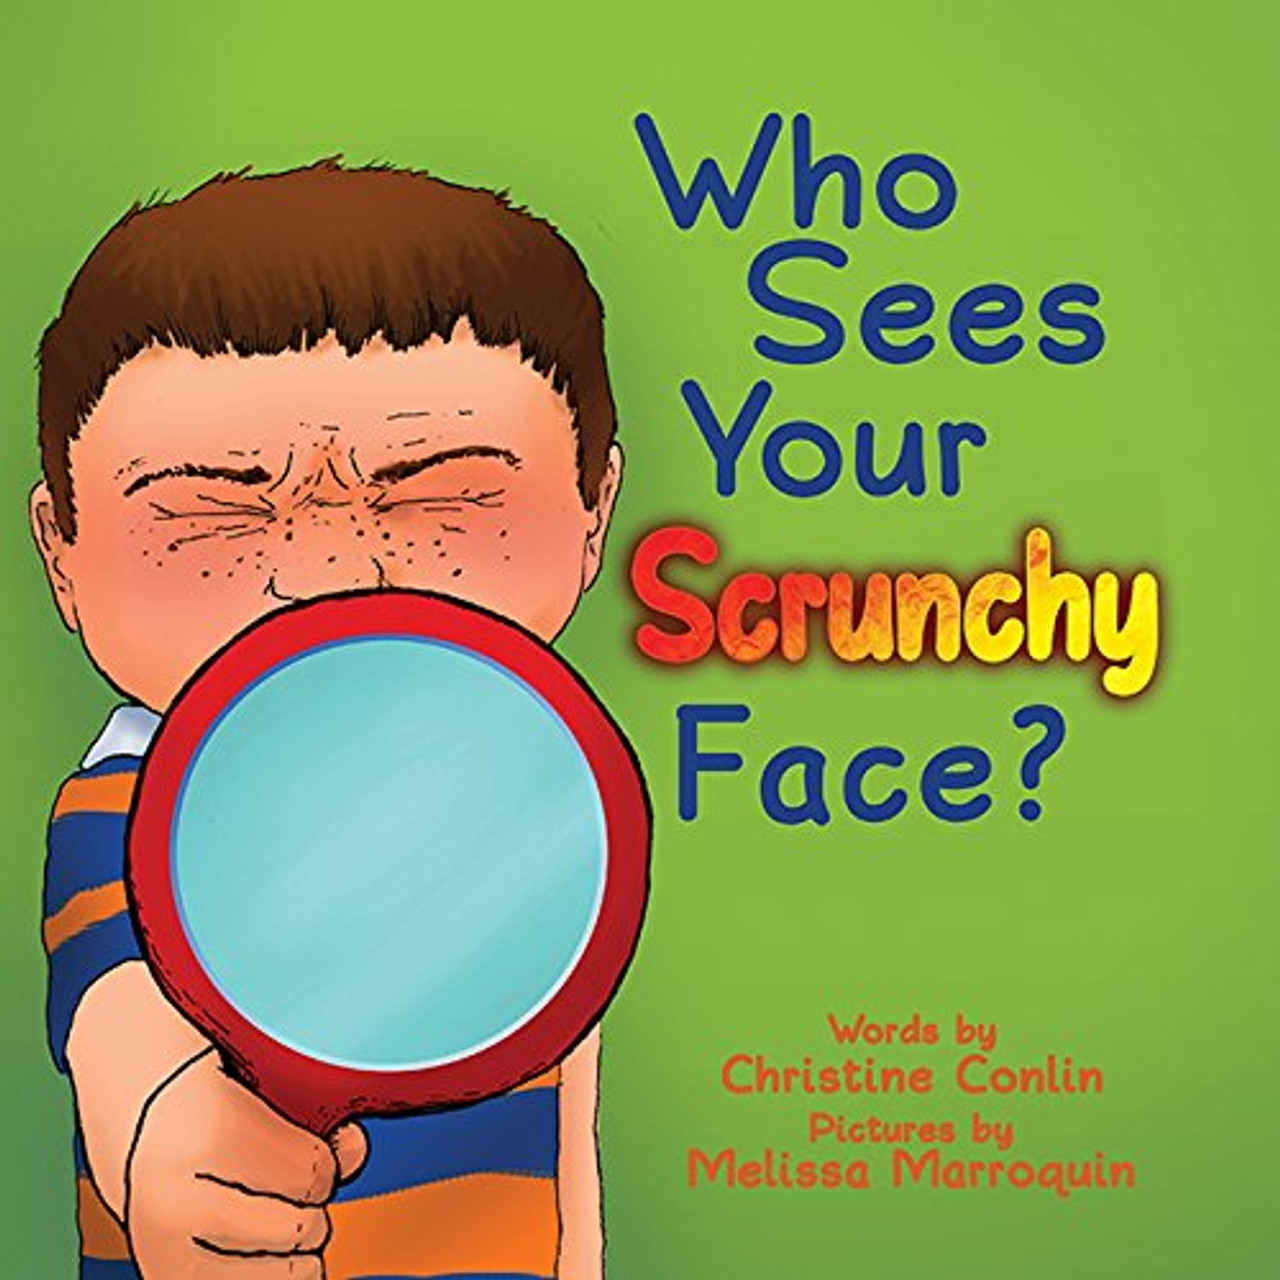 Who Sees Your Scrunchy Face?